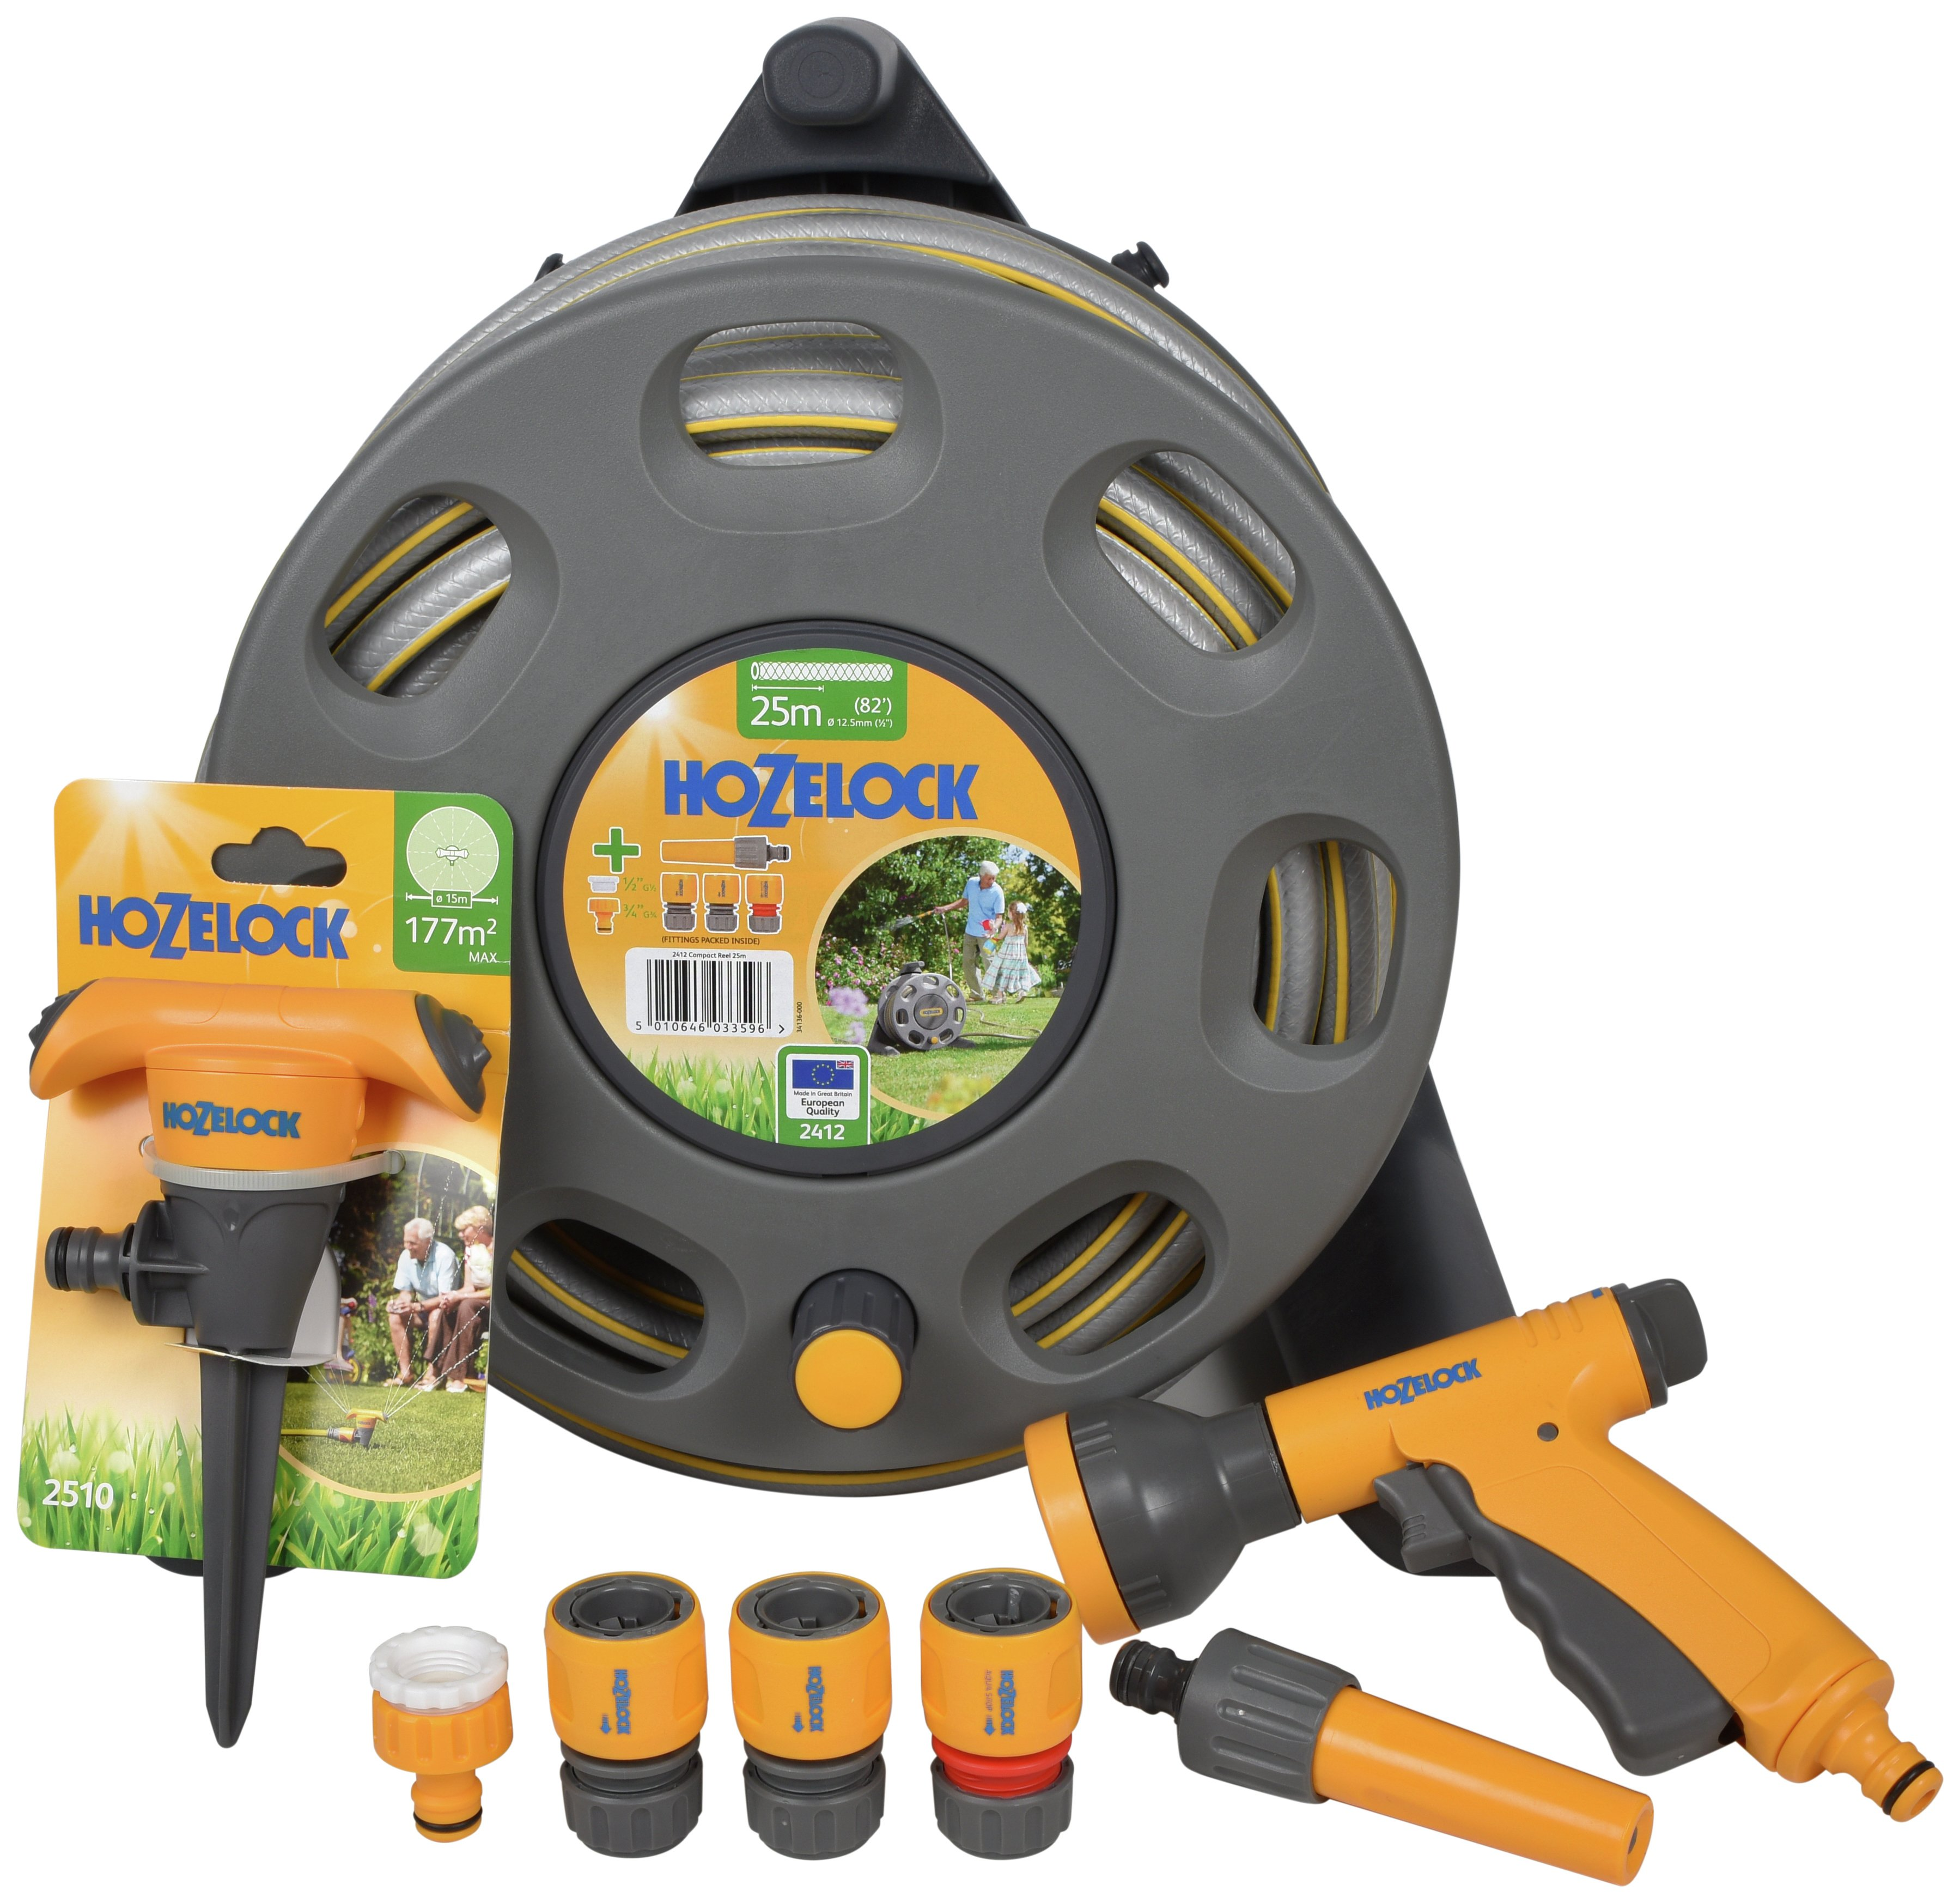 Hozelock Compact Reel with Accessories - 20m lowest price